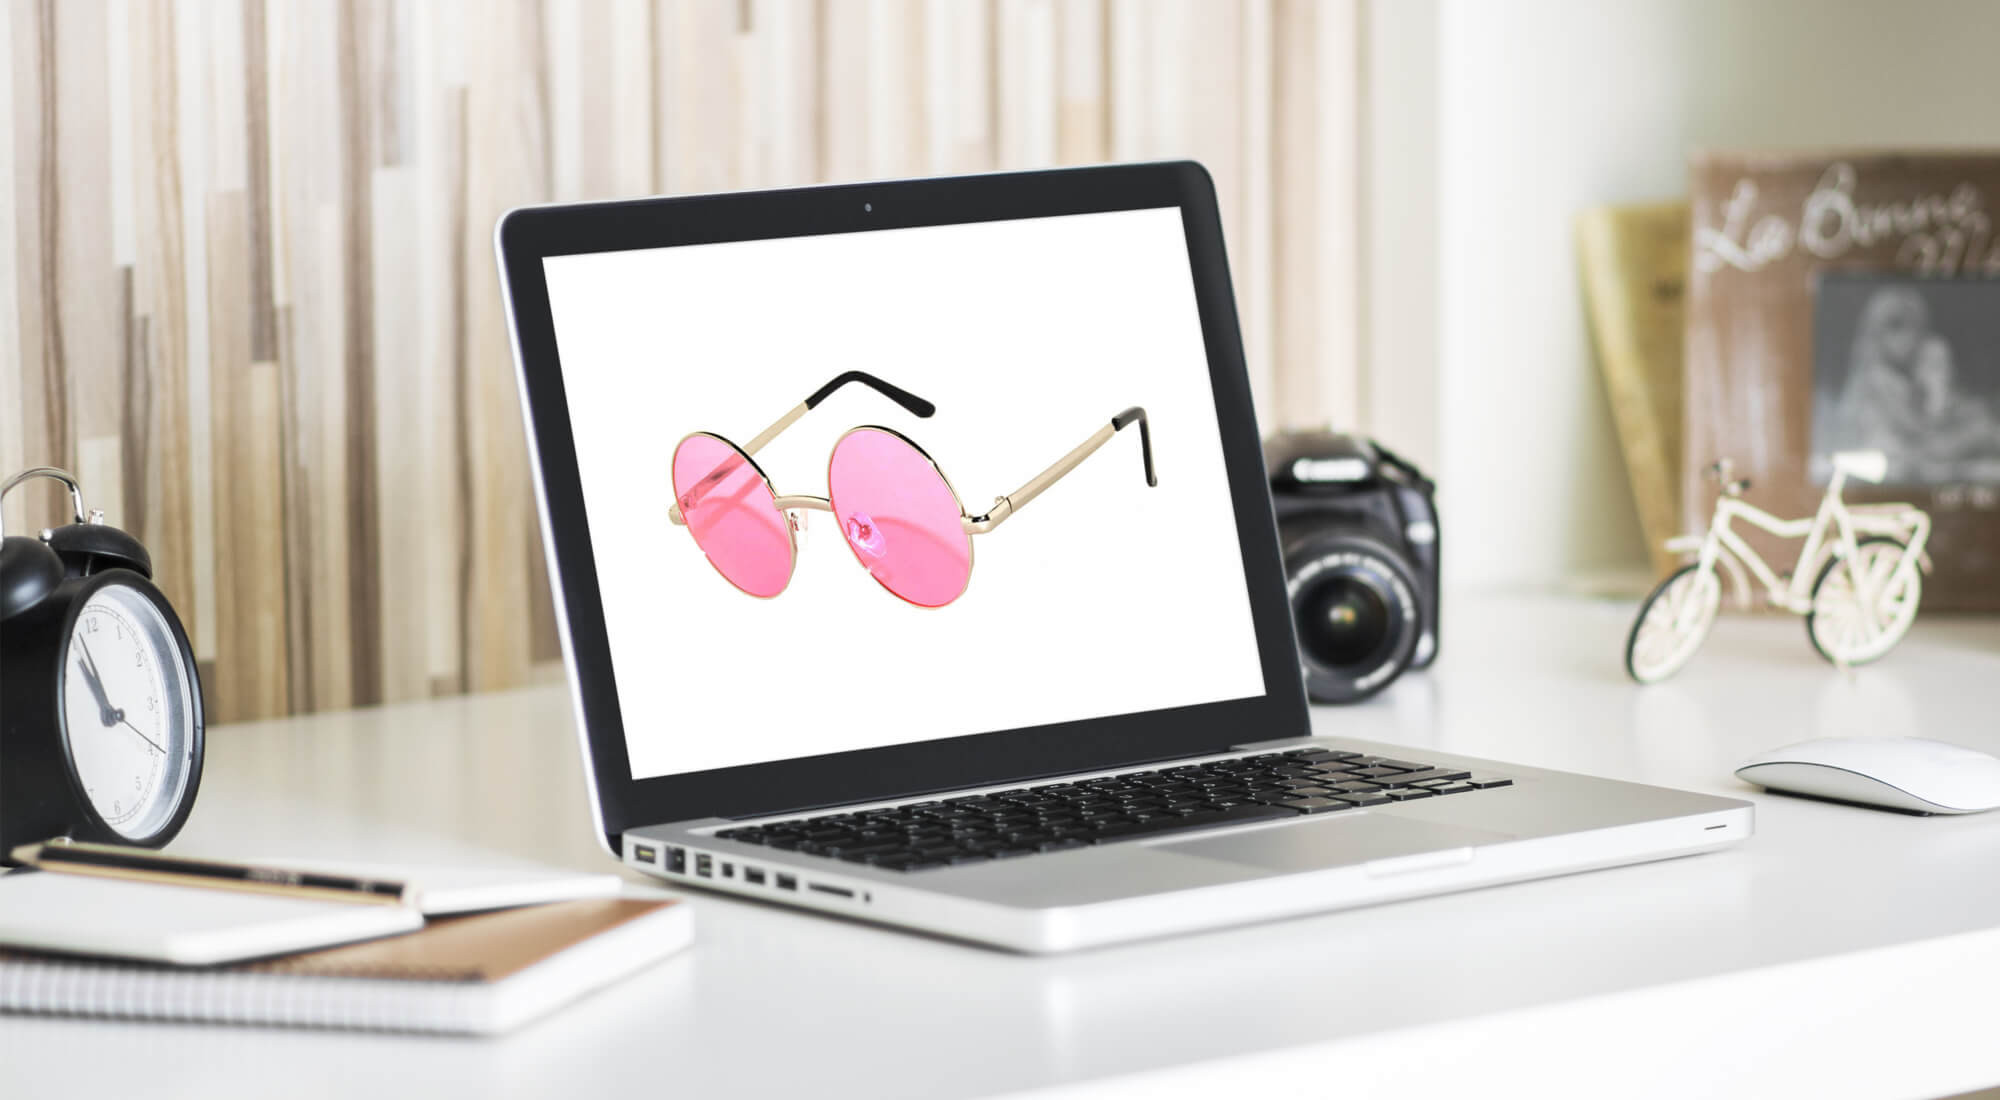 Digital Banking Products Through Rose-Colored Glasses